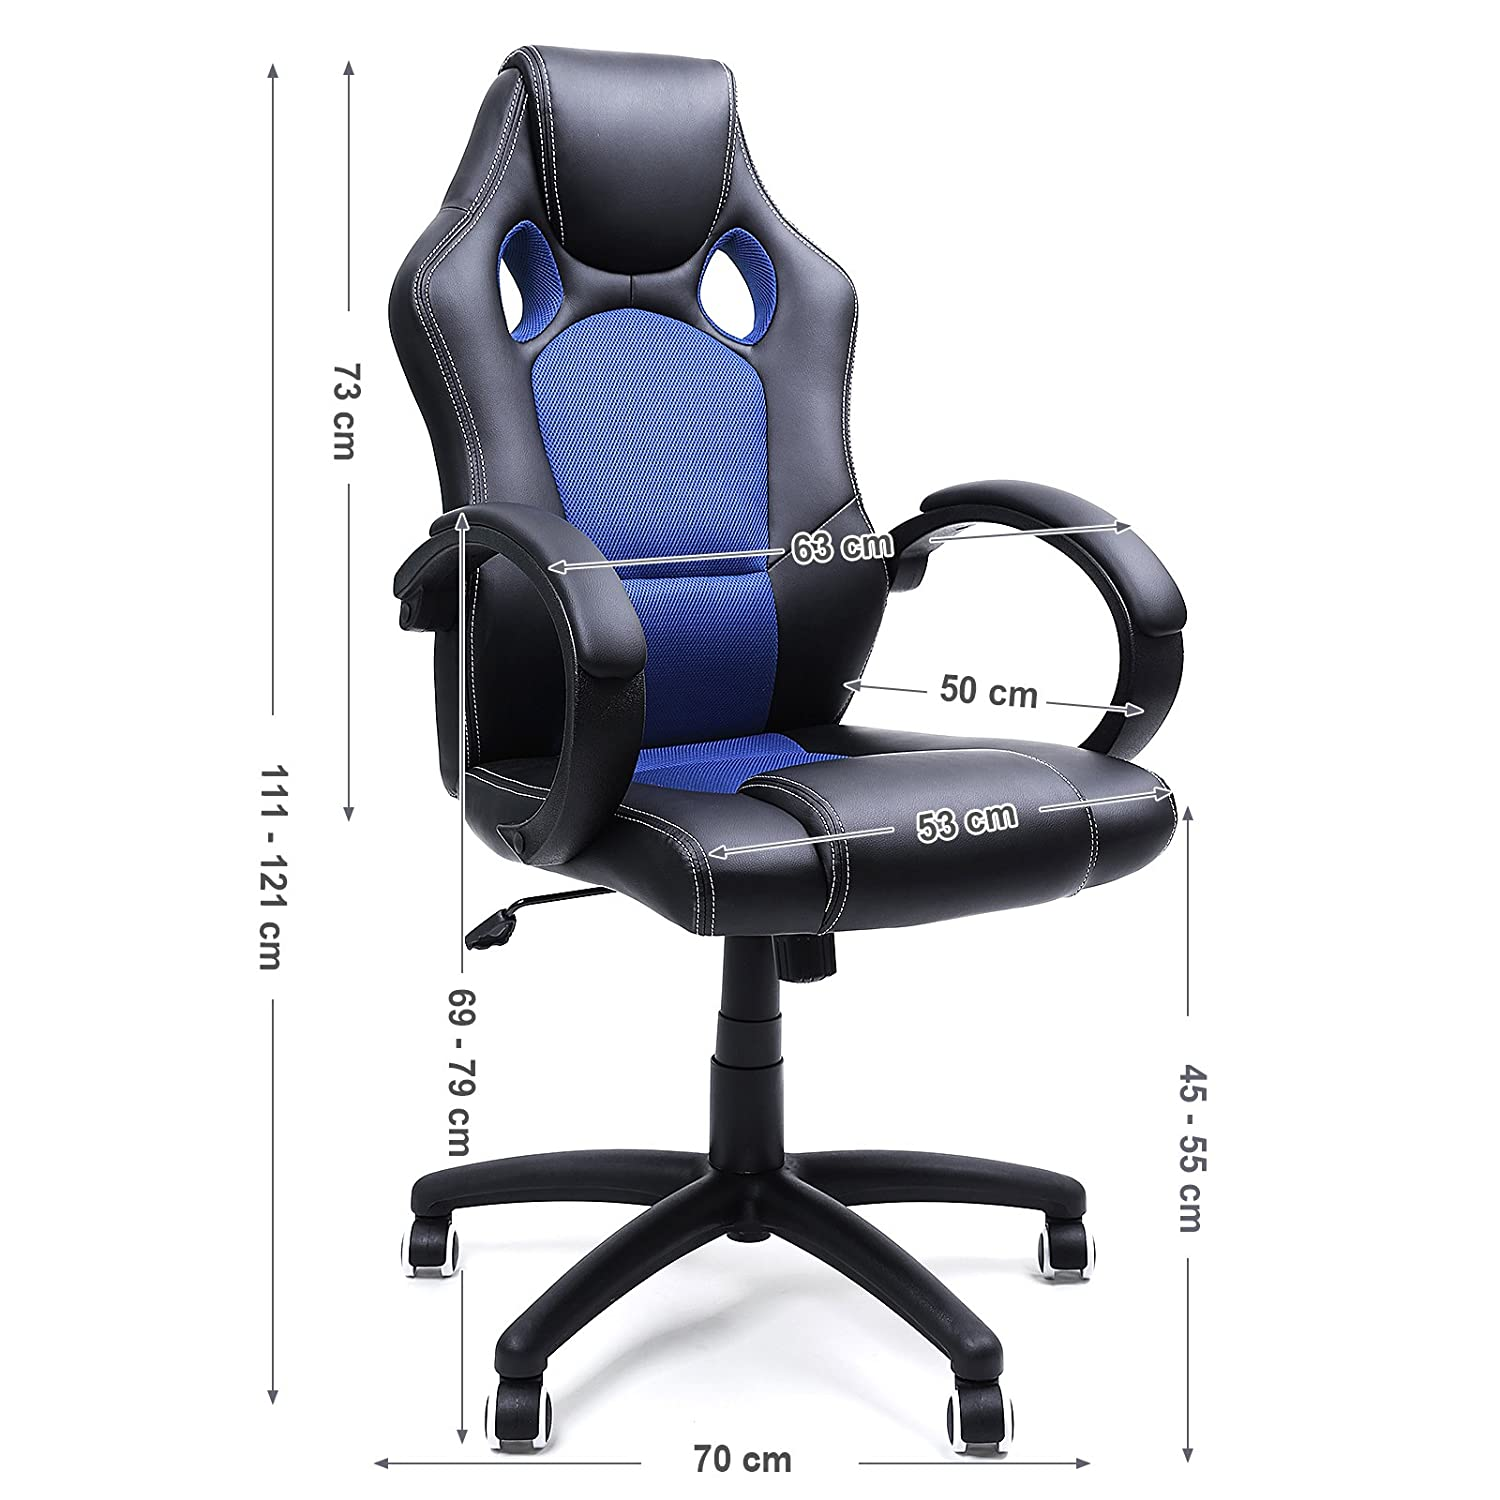 Songmics Racing Sport fice Chair with Tilt Function puter